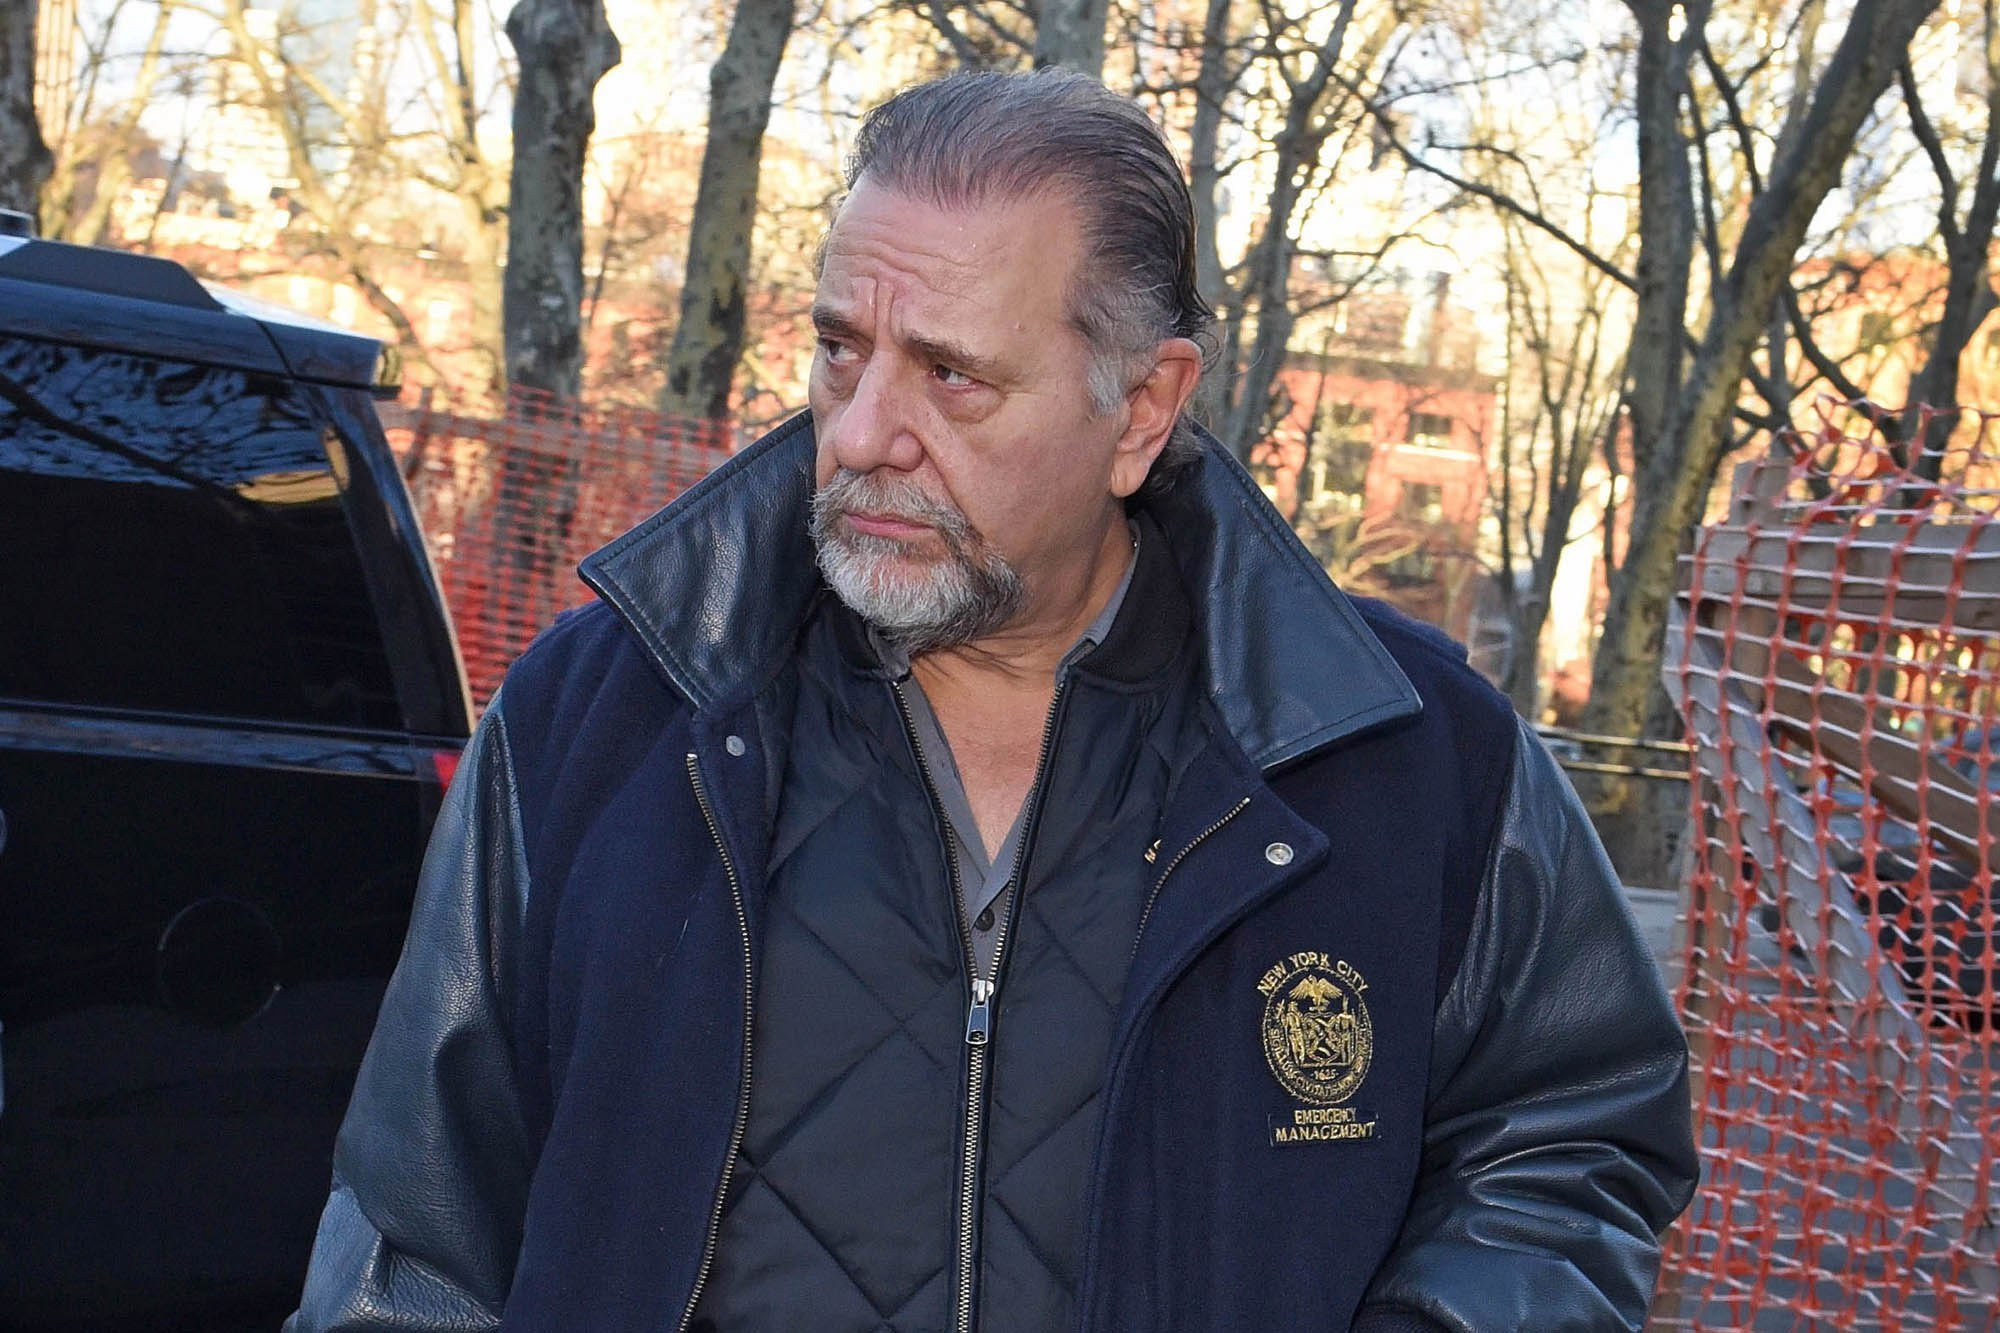 Ousted emergency management head insists de Blasio didn't ignore his pleas